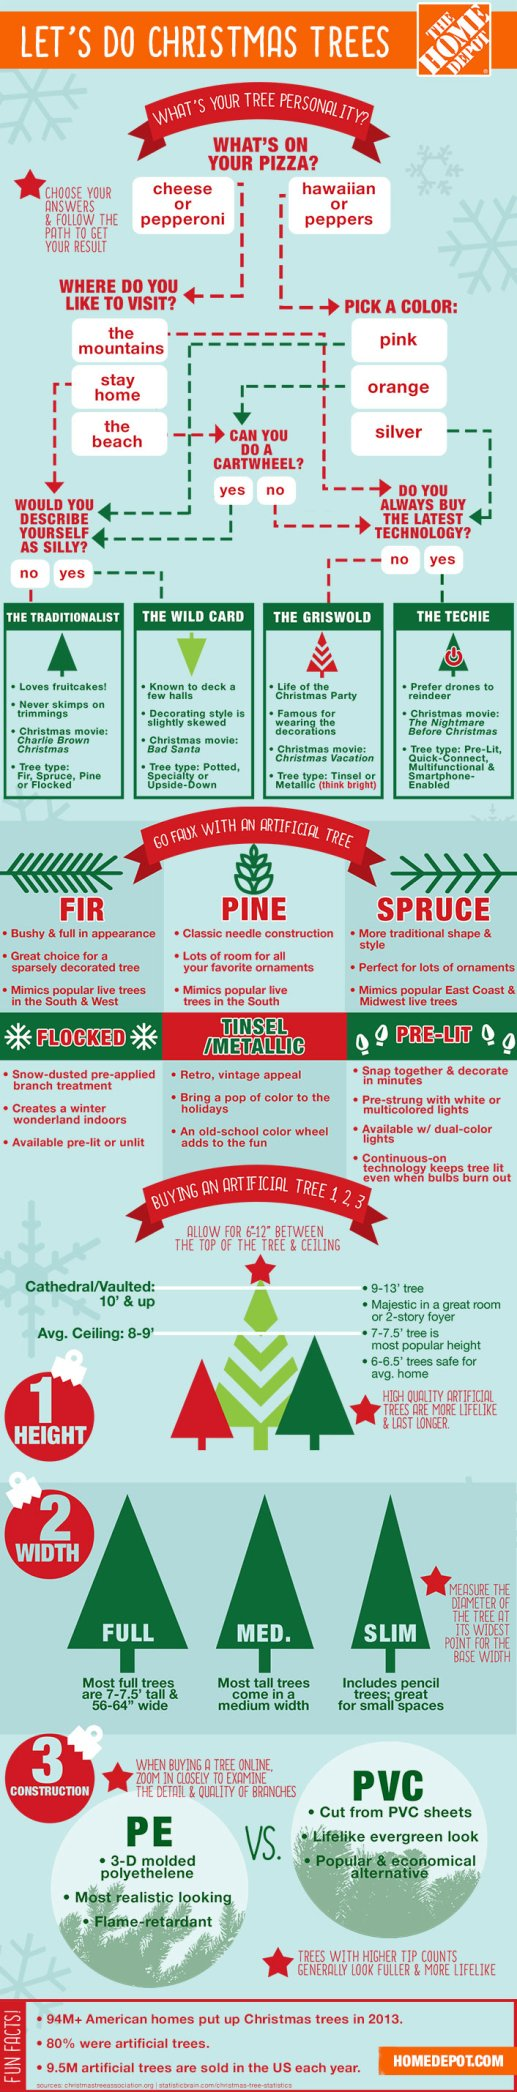 Christmas-Tree-Infographic-with-Personality-Quiz